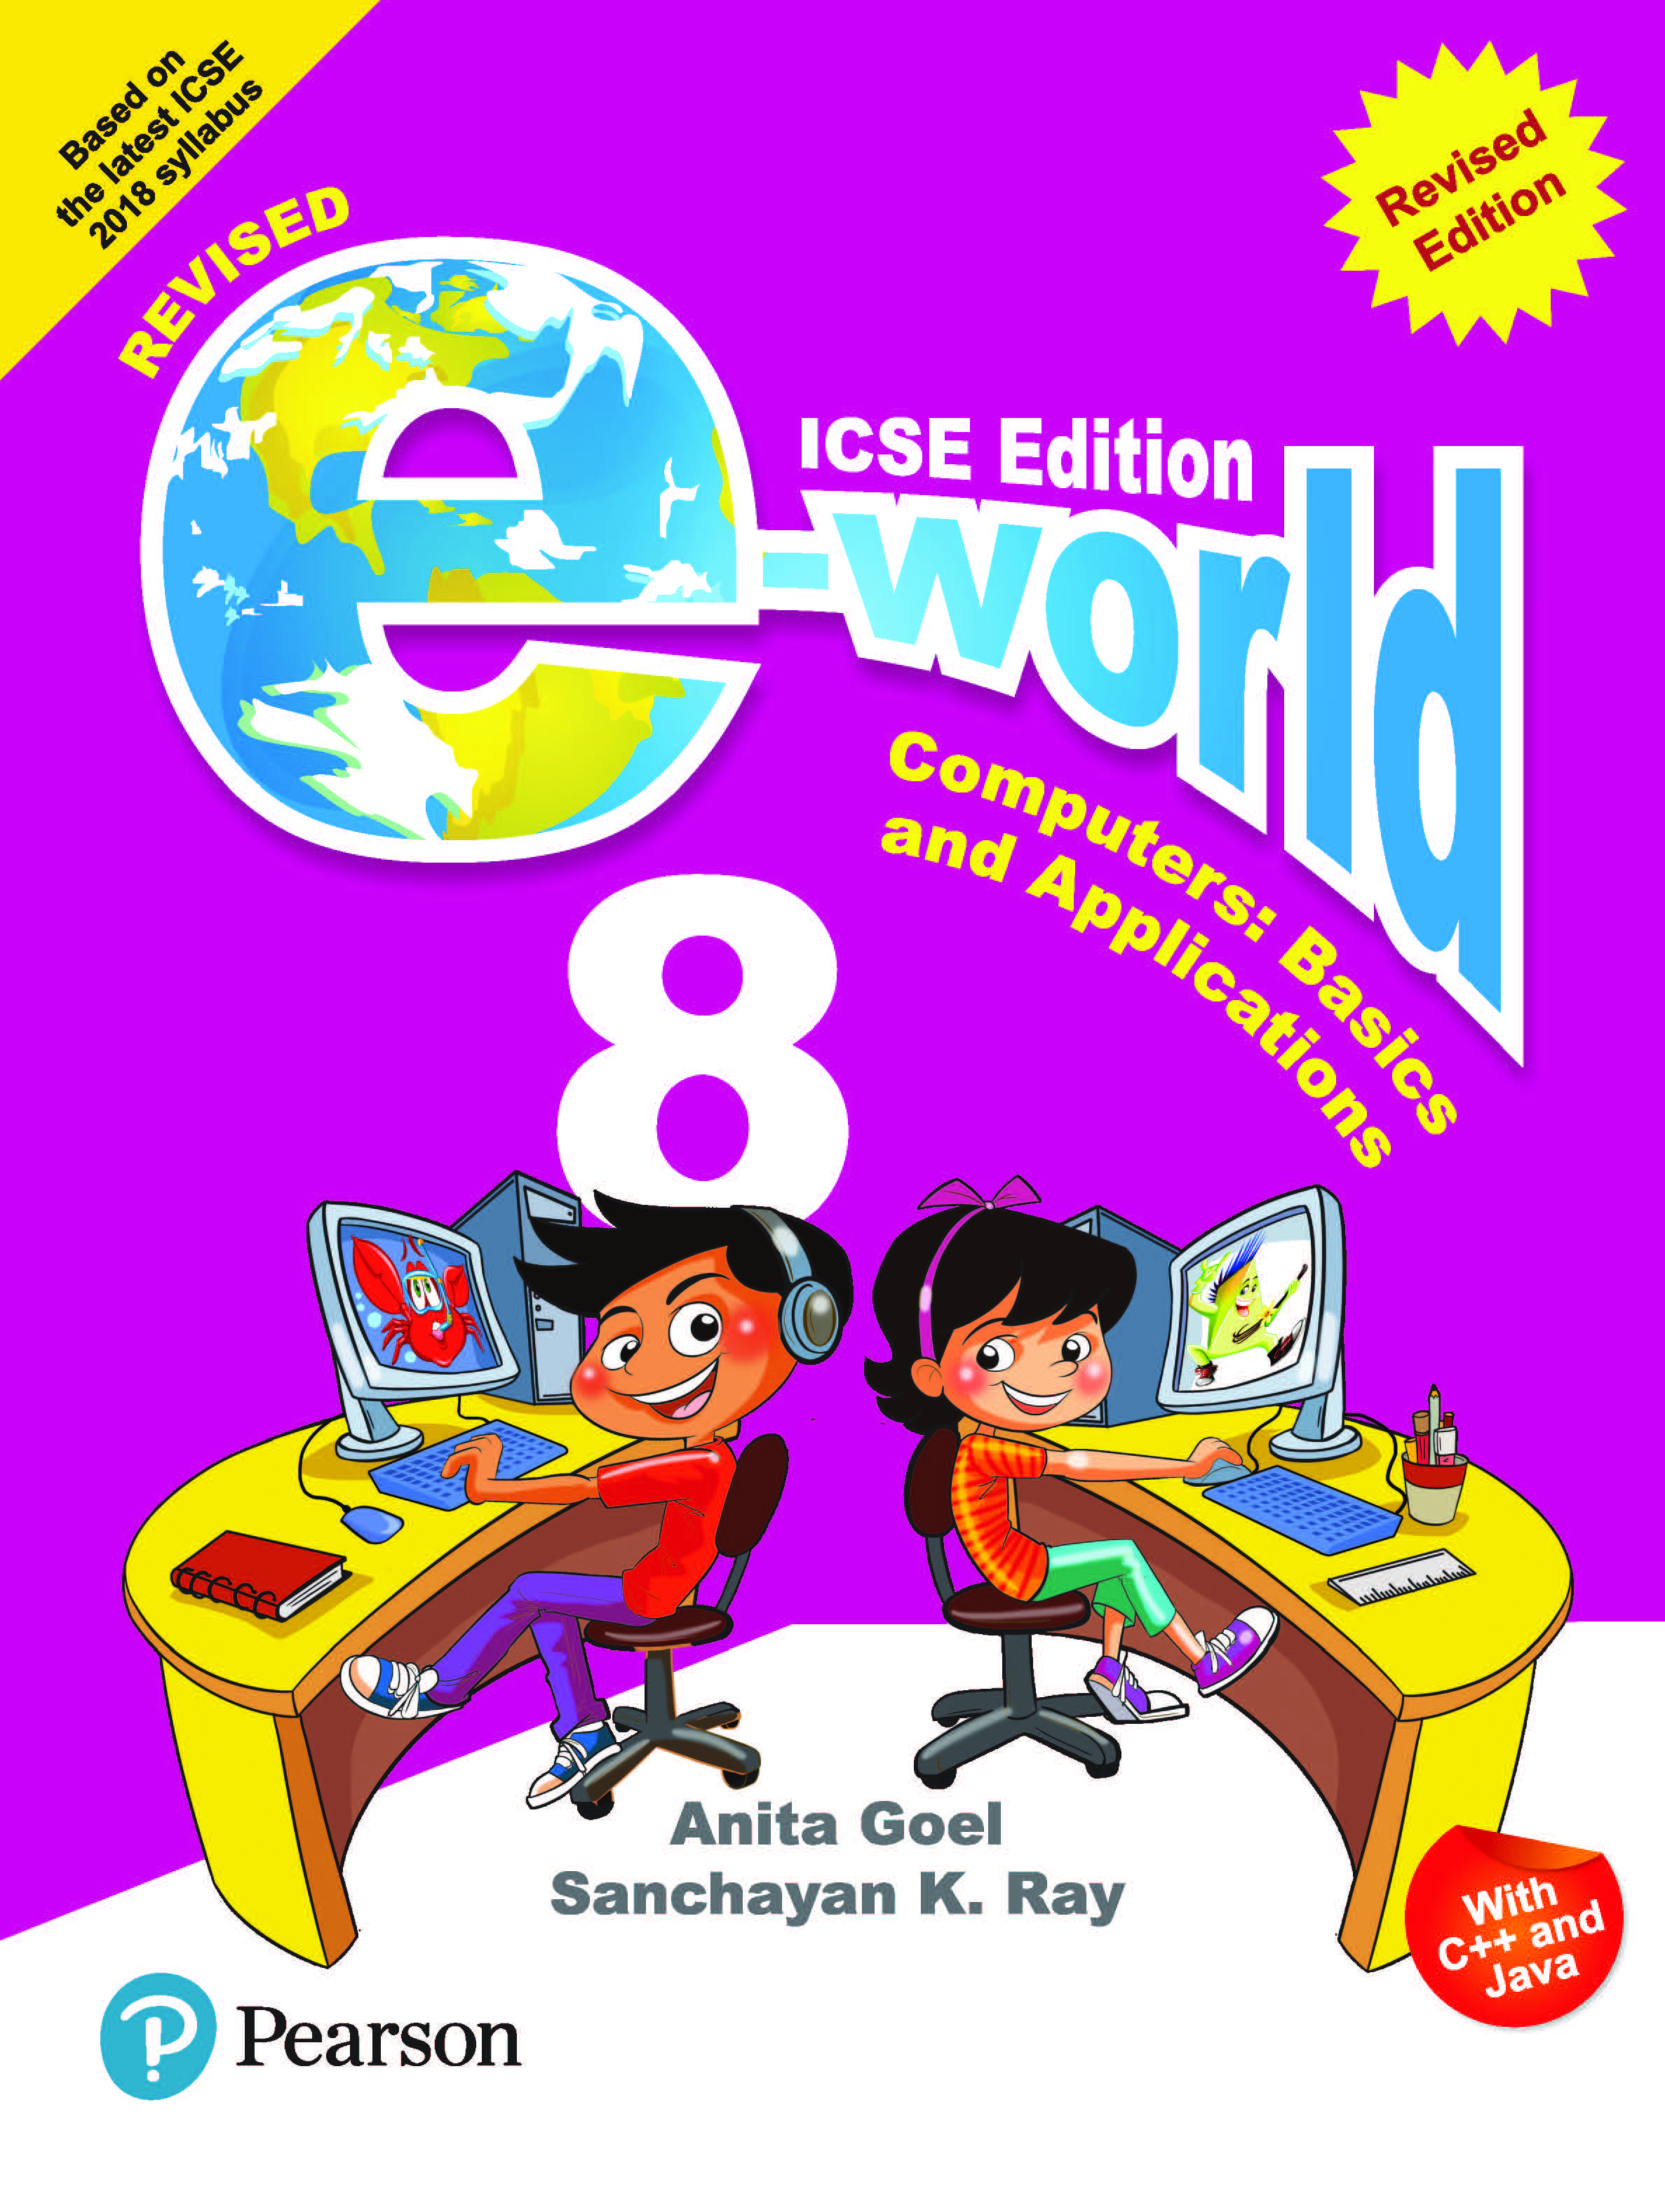 E-world -Computer Science for ICSE Class 8 by Pearson